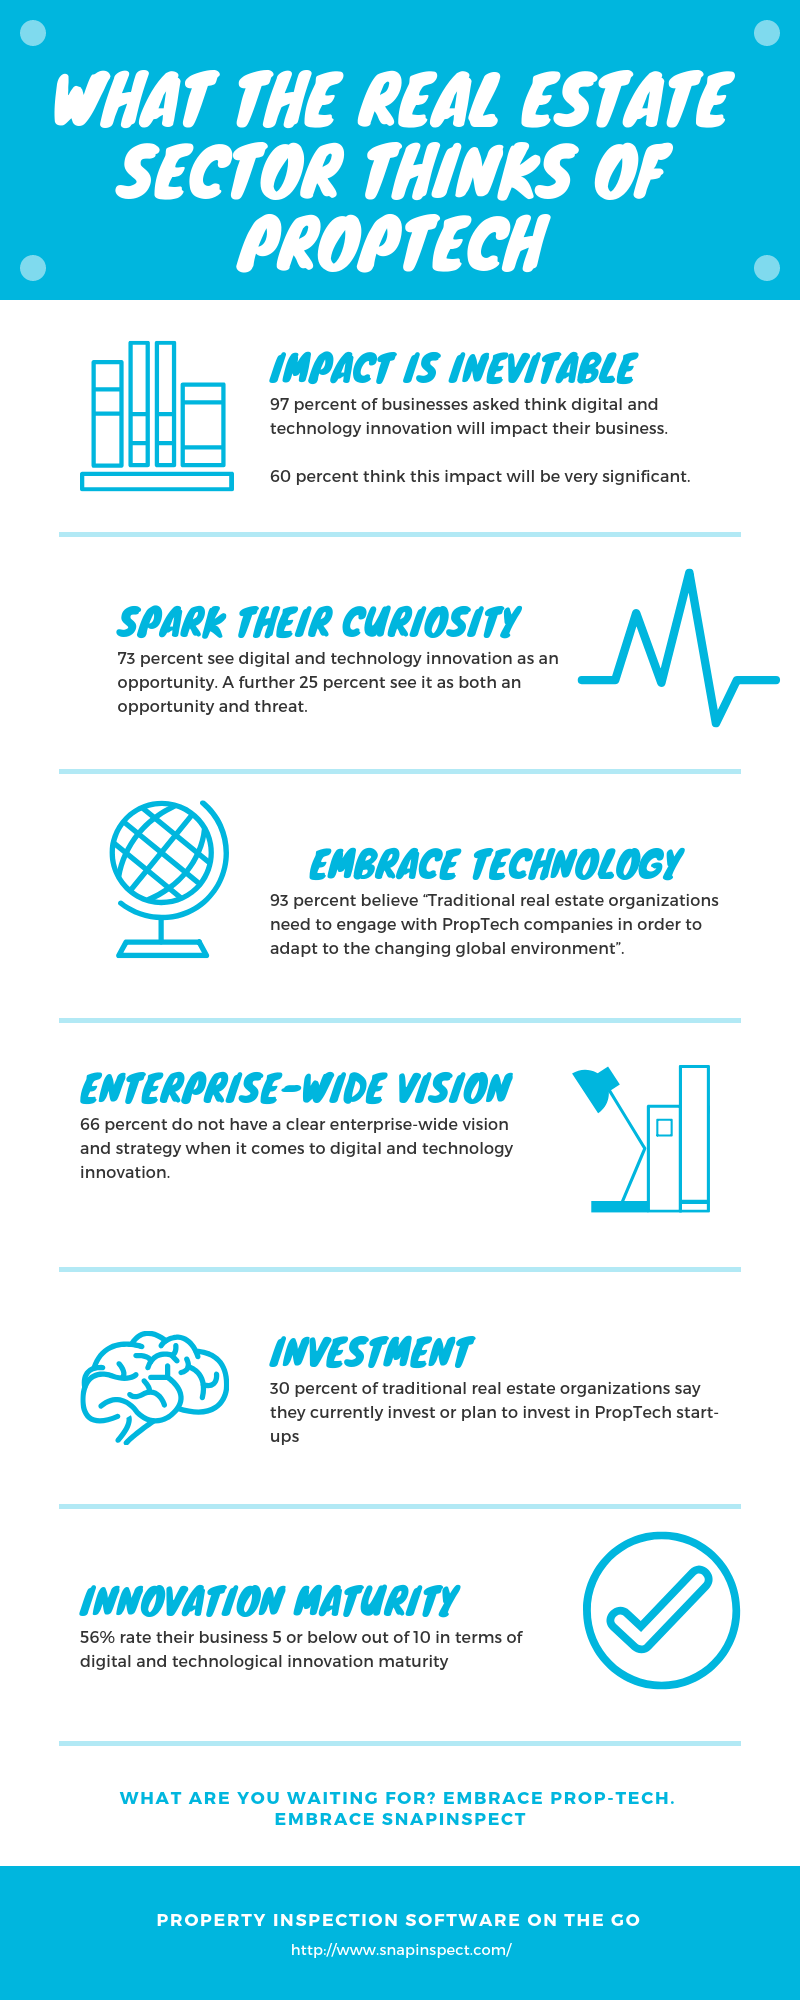 Proptech glossary